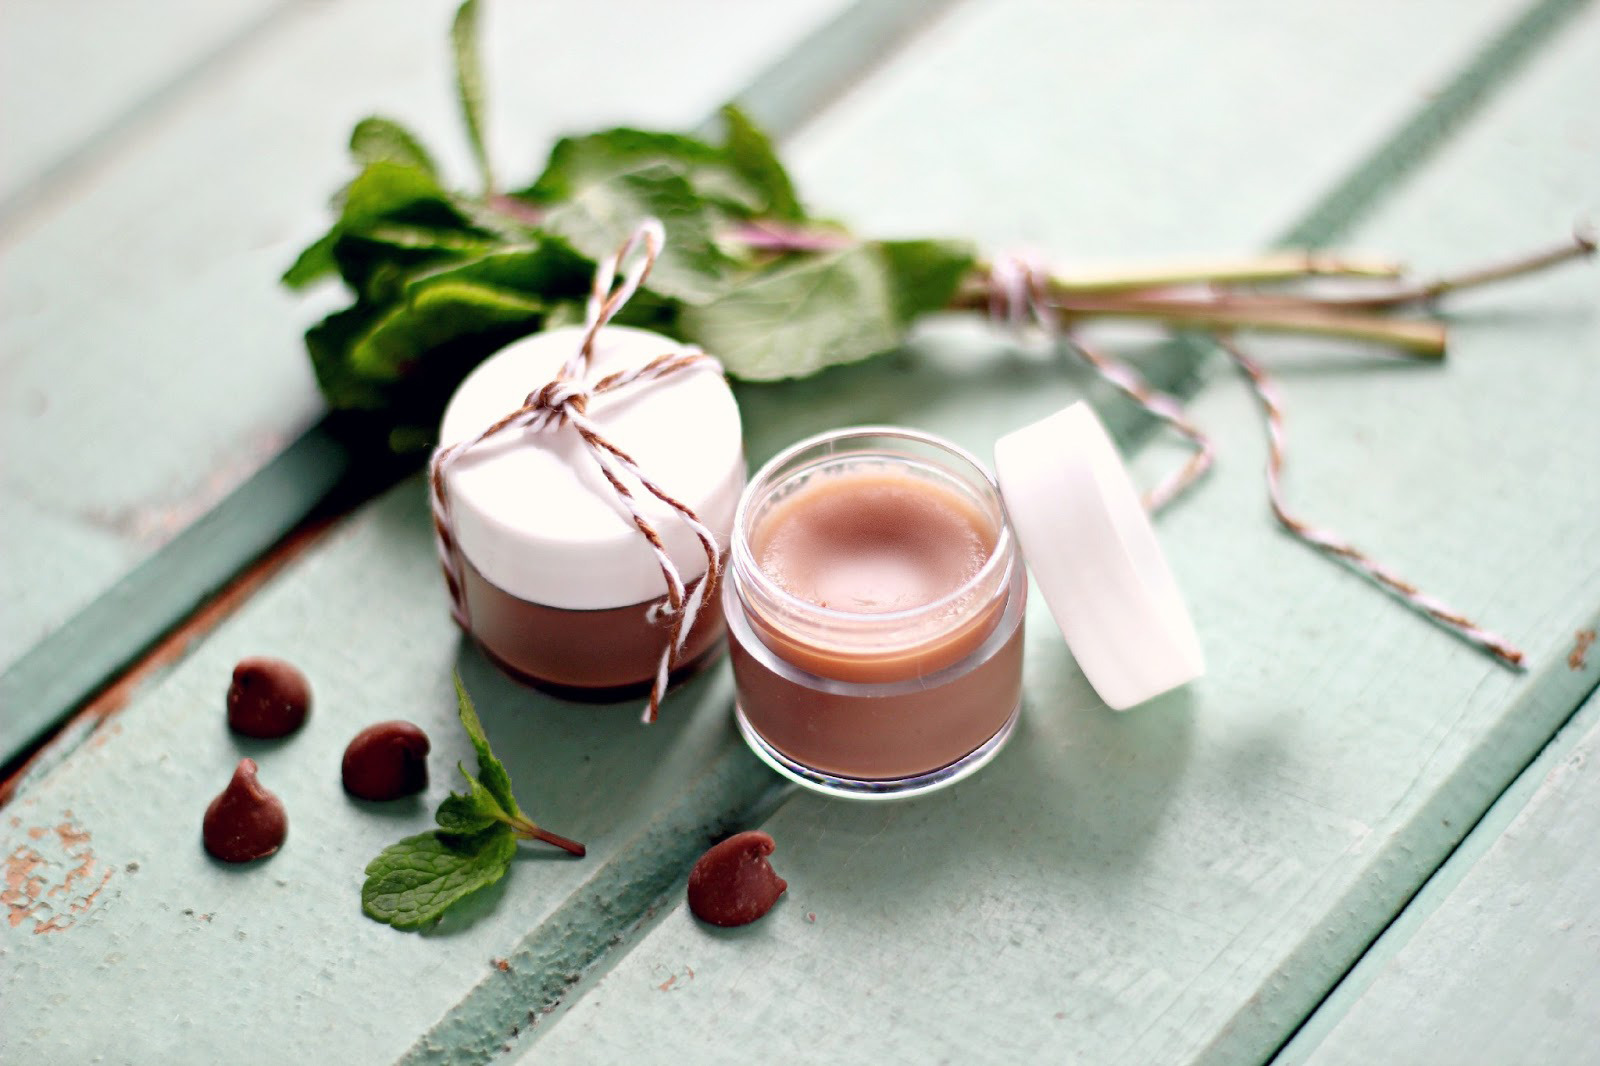 natural cosmetics two pink lip balms in small jars on a white table with some greens